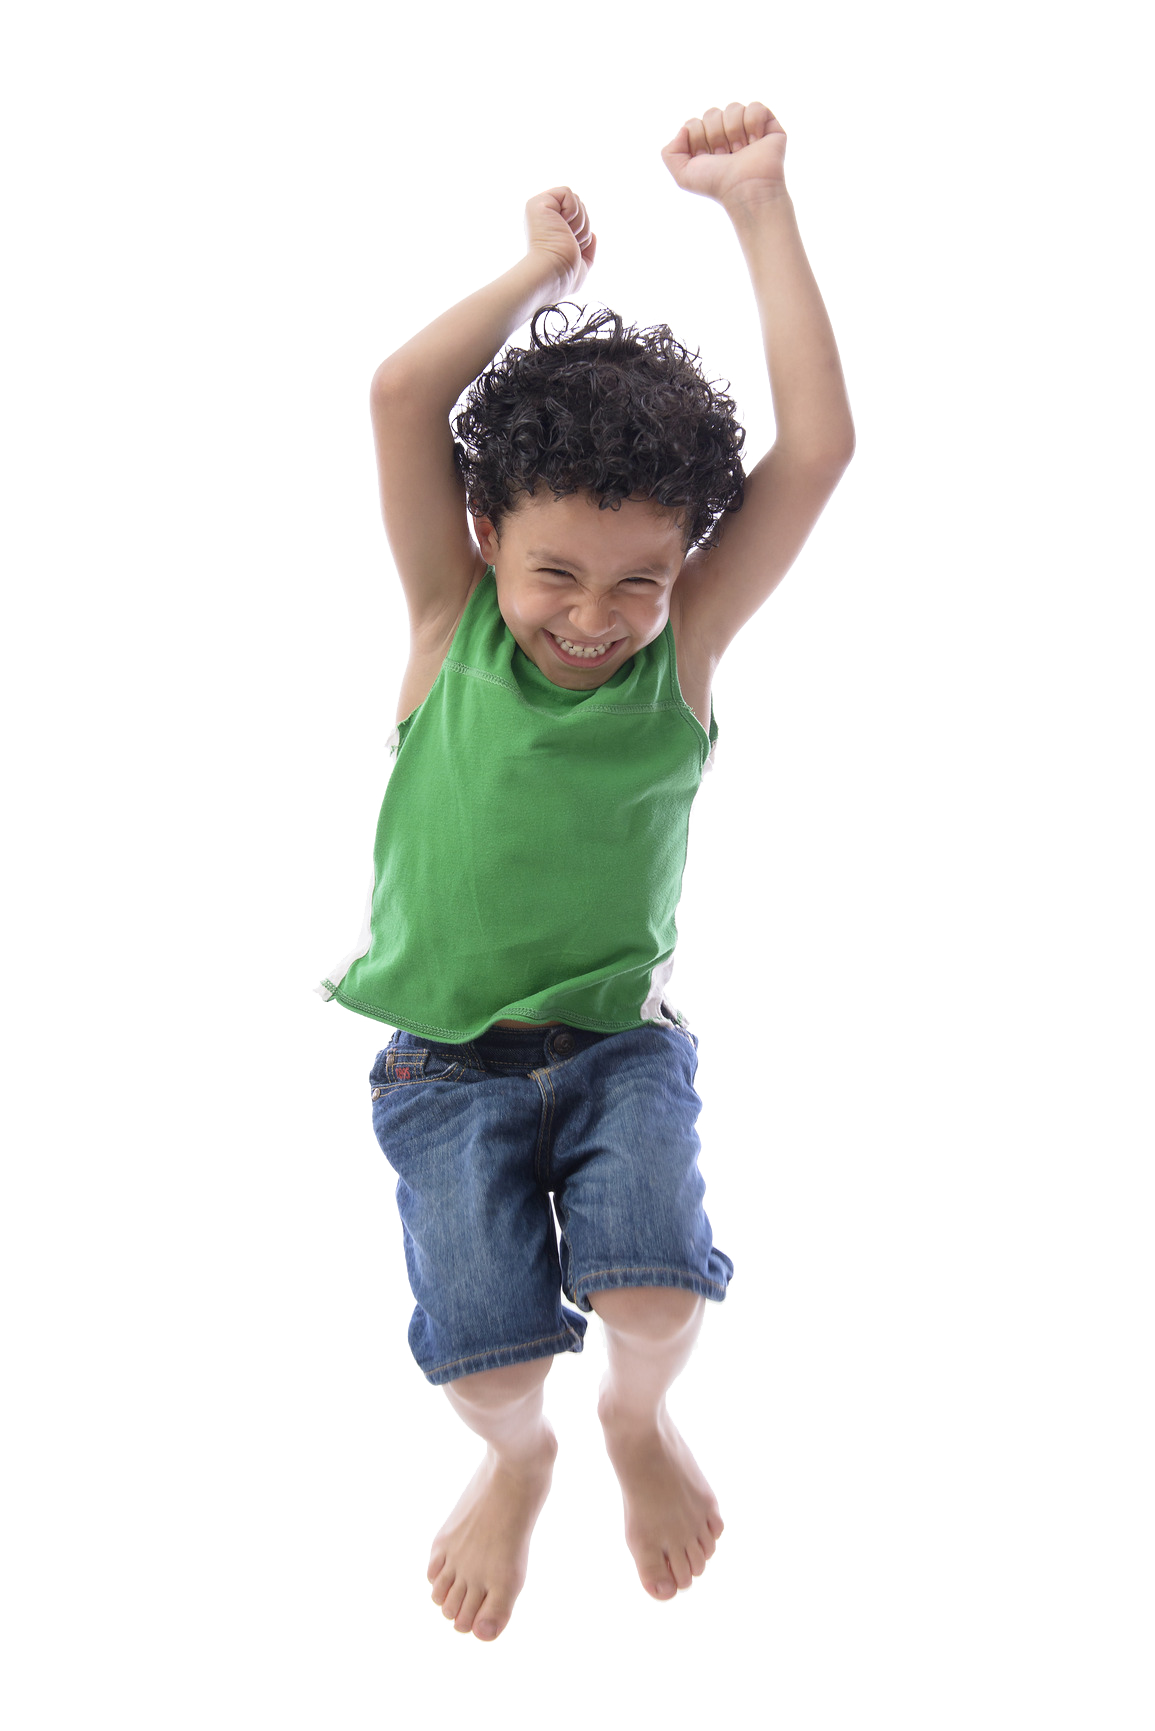 Jumping boy - no background